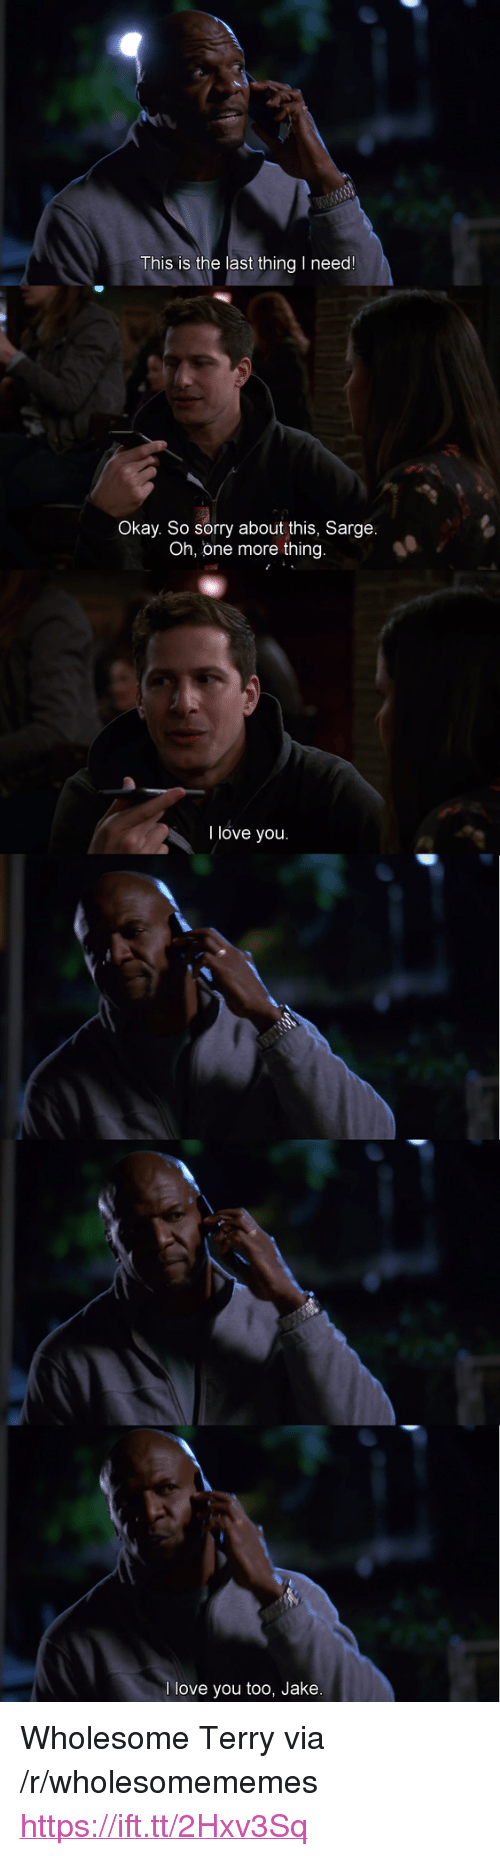 "Love, Sorry, and I Love You: This is the last thing I need!  Okay. So sorry about this, Sarge  Oh, one more thing.  I love you.  l love you too, Jake <p>Wholesome Terry via /r/wholesomememes <a href=""https://ift.tt/2Hxv3Sq"">https://ift.tt/2Hxv3Sq</a></p>"